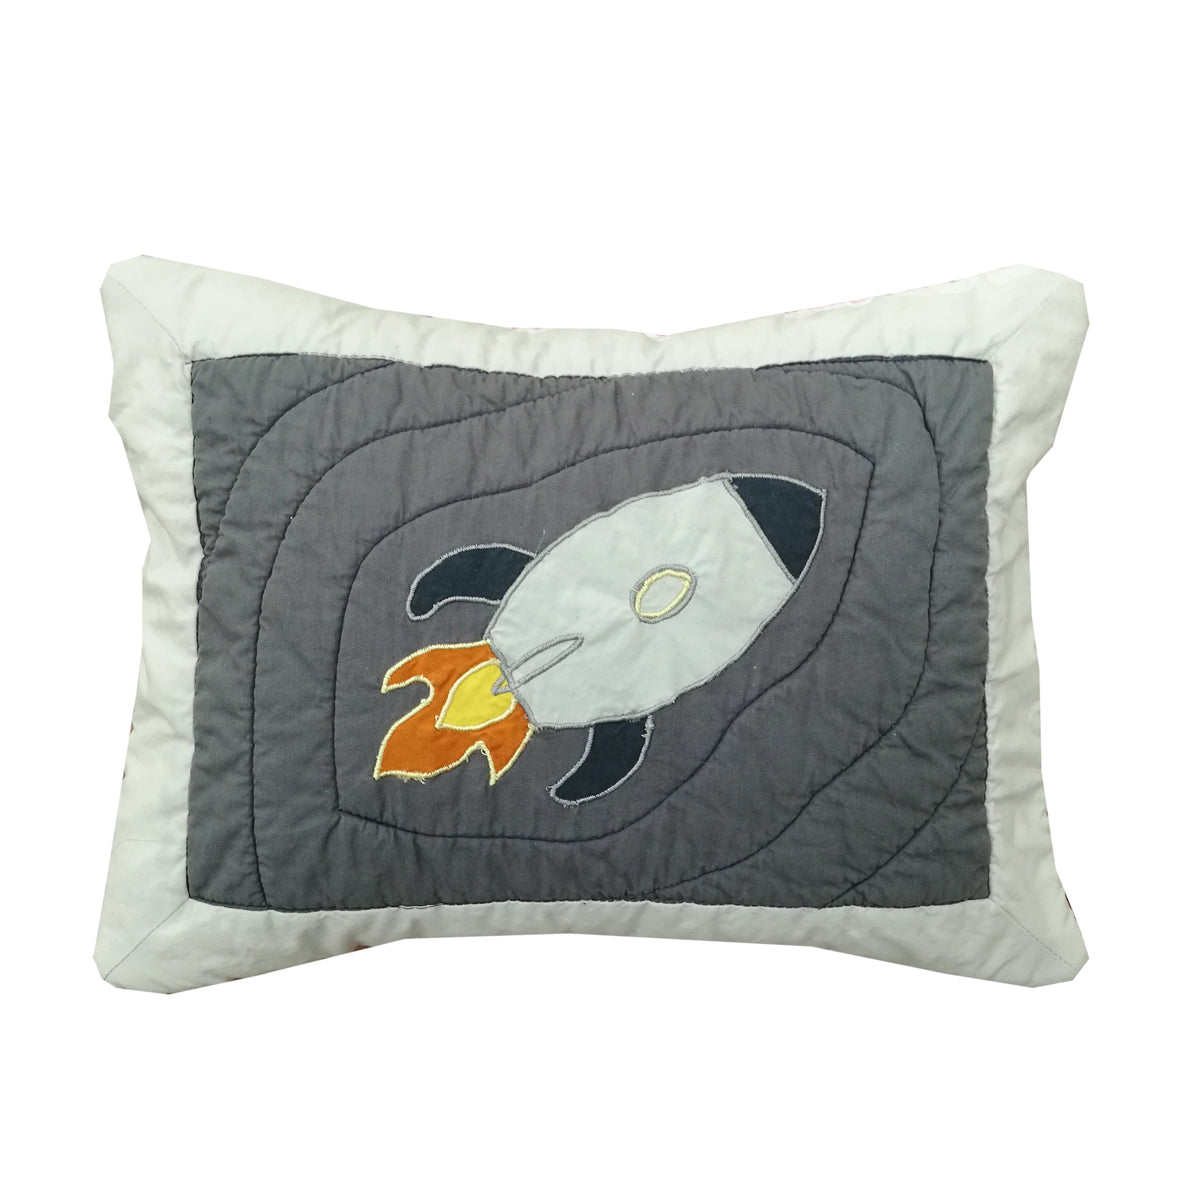 Spaceship  Pillow Cover